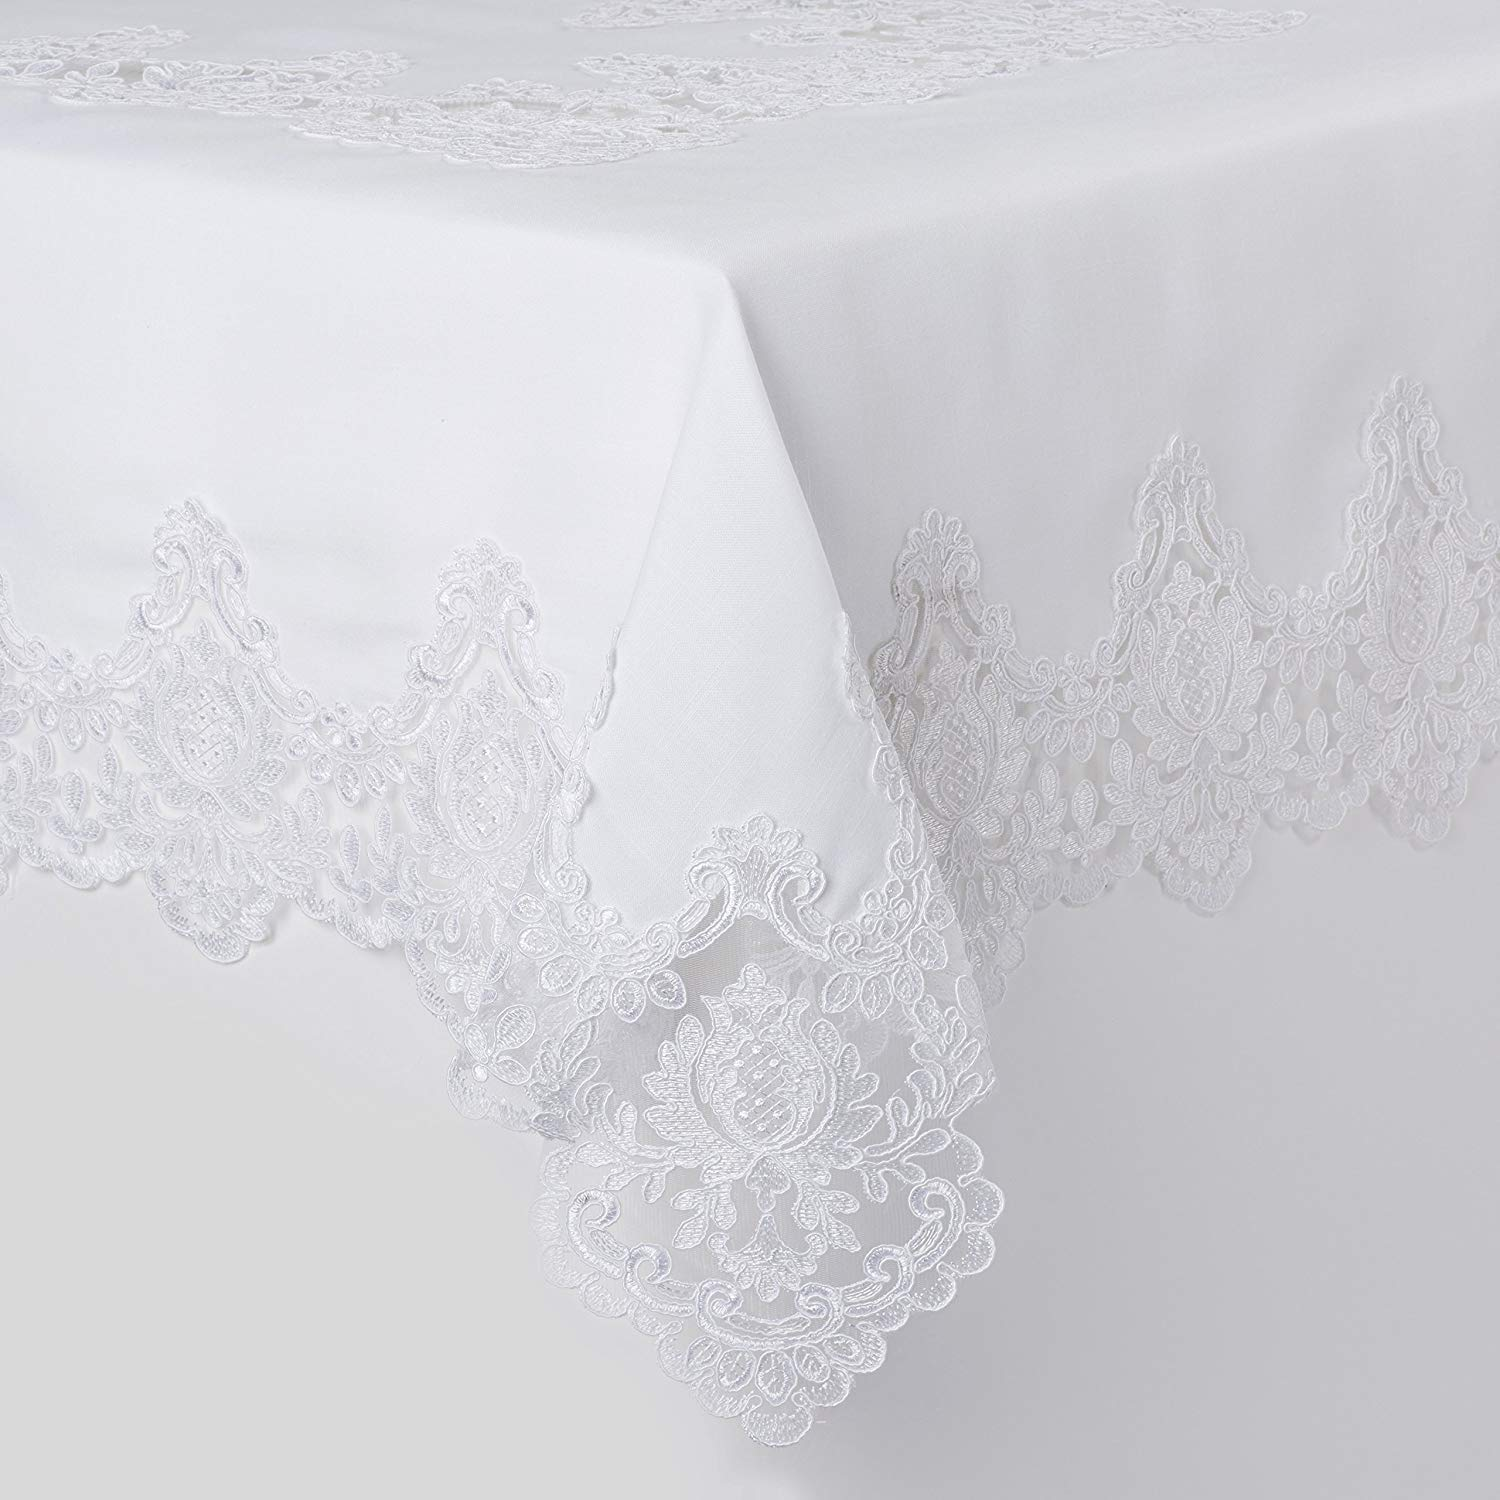 Violet Linen Imperial Embroidered Vintage Lace Design Oblong//Rectangle Tablecloth 70 x 160 Cream IMPERIAL CR-10